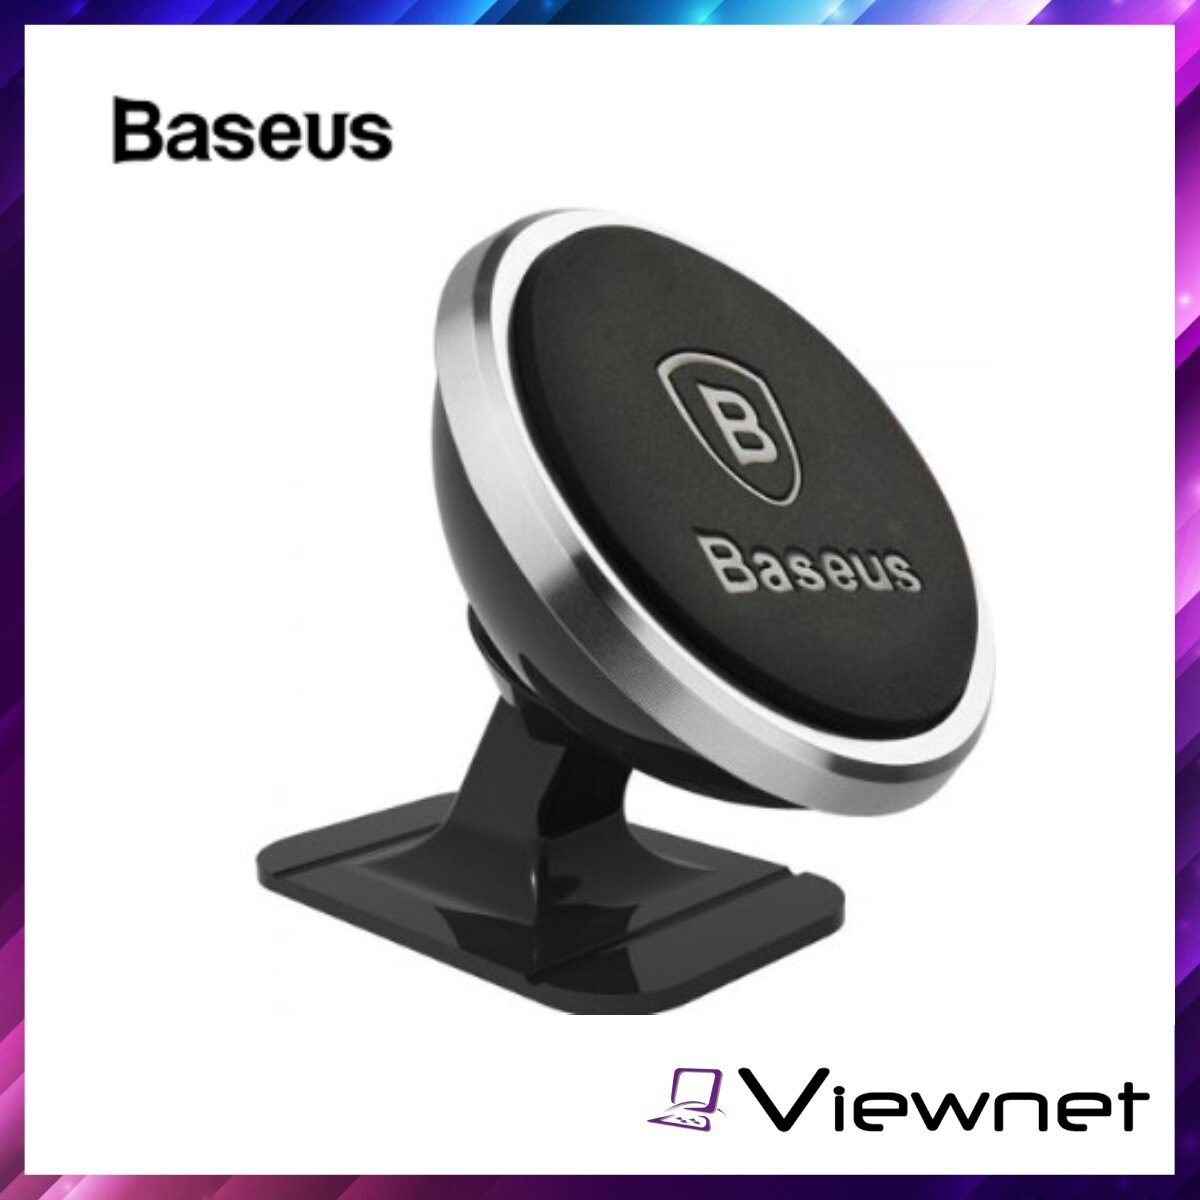 Baseus Sugent 360-degree Rotation Magnetic Mount Holder, Paste type, Strong Paste, Multi-angle, Wide Compatible, Rose Gold / Silver / Luxury Gold